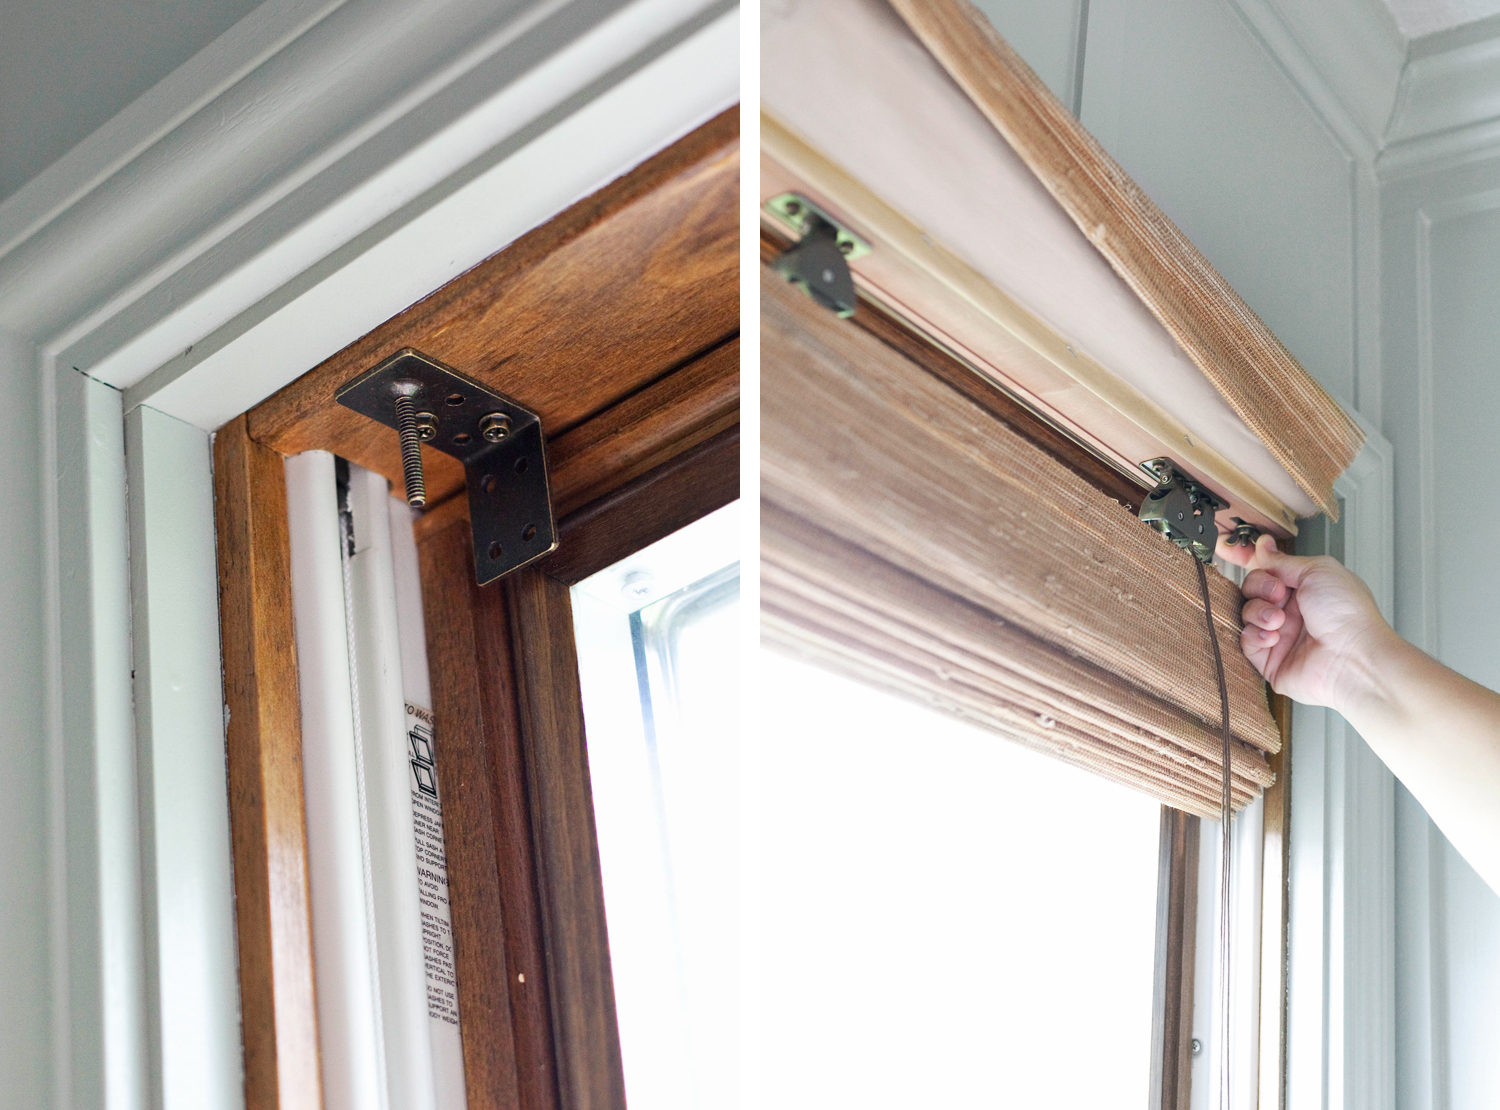 how to instal blinds from blinds.com